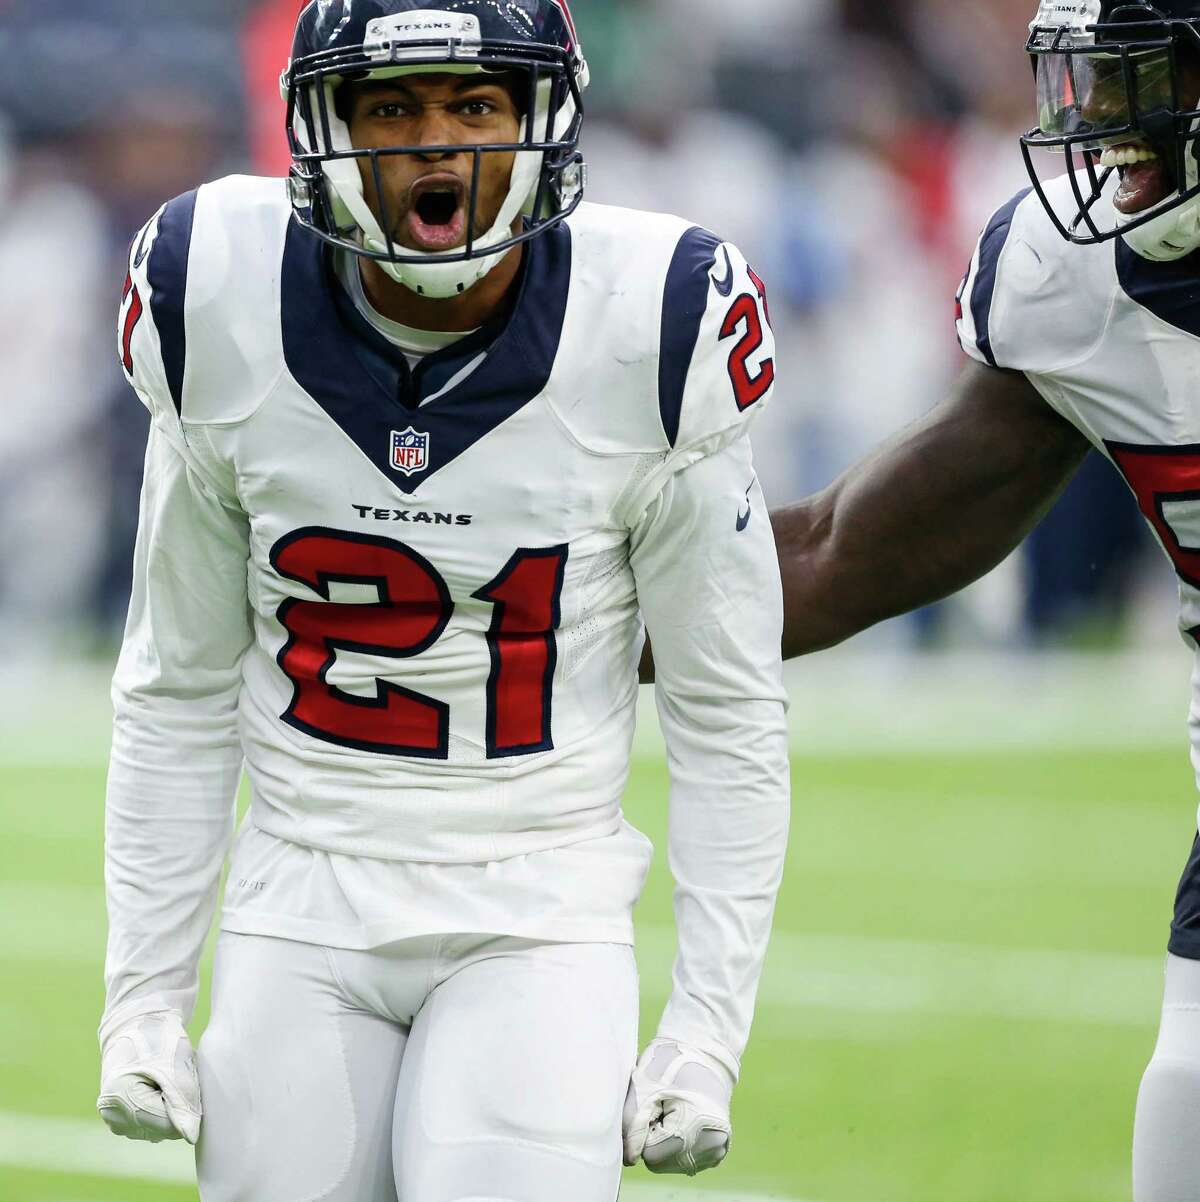 Houston Texans cornerback A.J. Bouye (21) celebrates after sacking Chicago Bears quarterback Jay Cutler (6) during the fourth quarter of an NFL football game at NRG Stadium on Sunday, Sept. 11, 2016, in Houston.